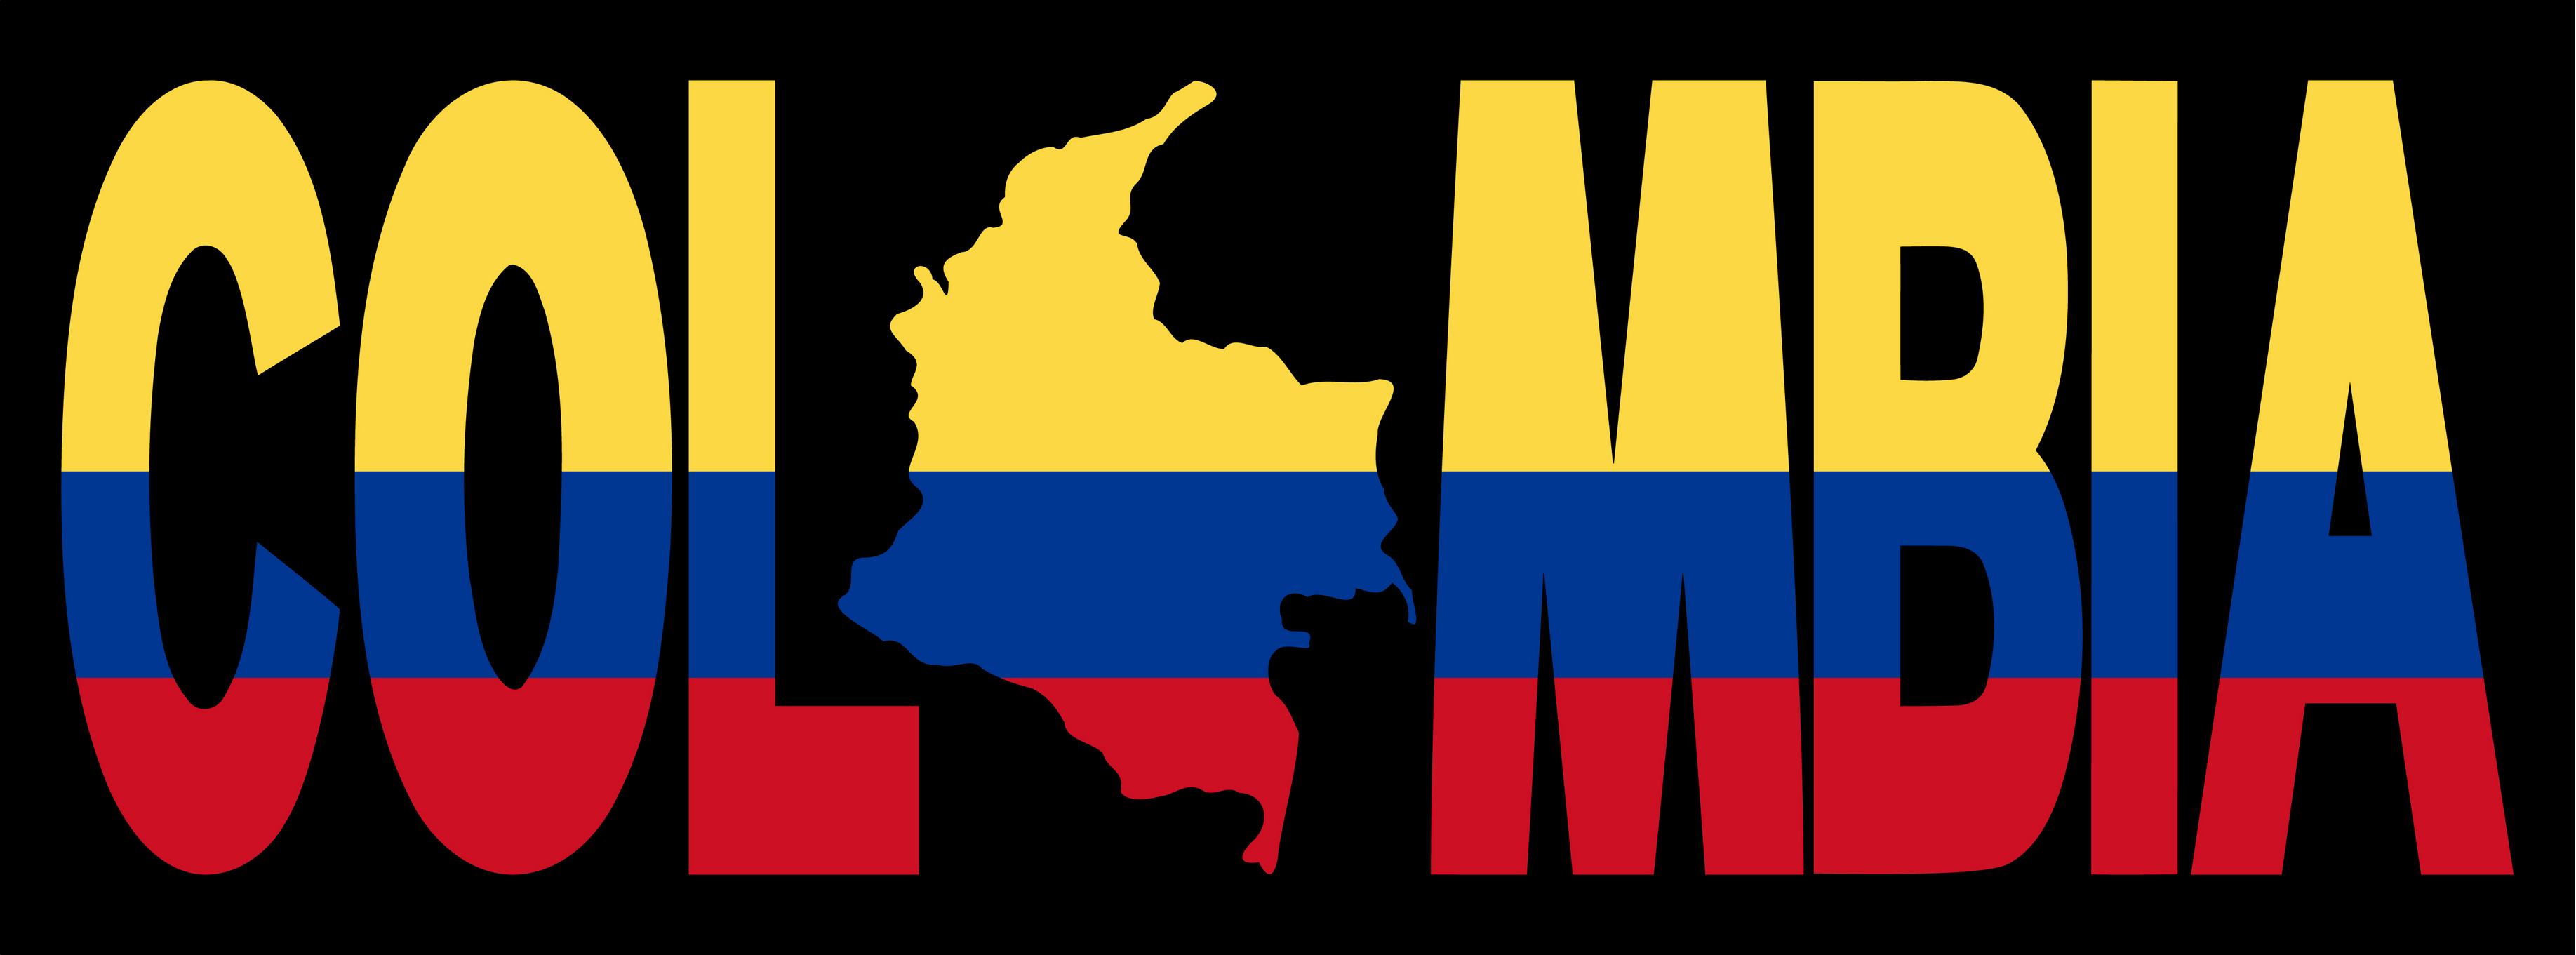 Well-known Colombia images Colombia HD wallpaper and background photos (37284624) SL24